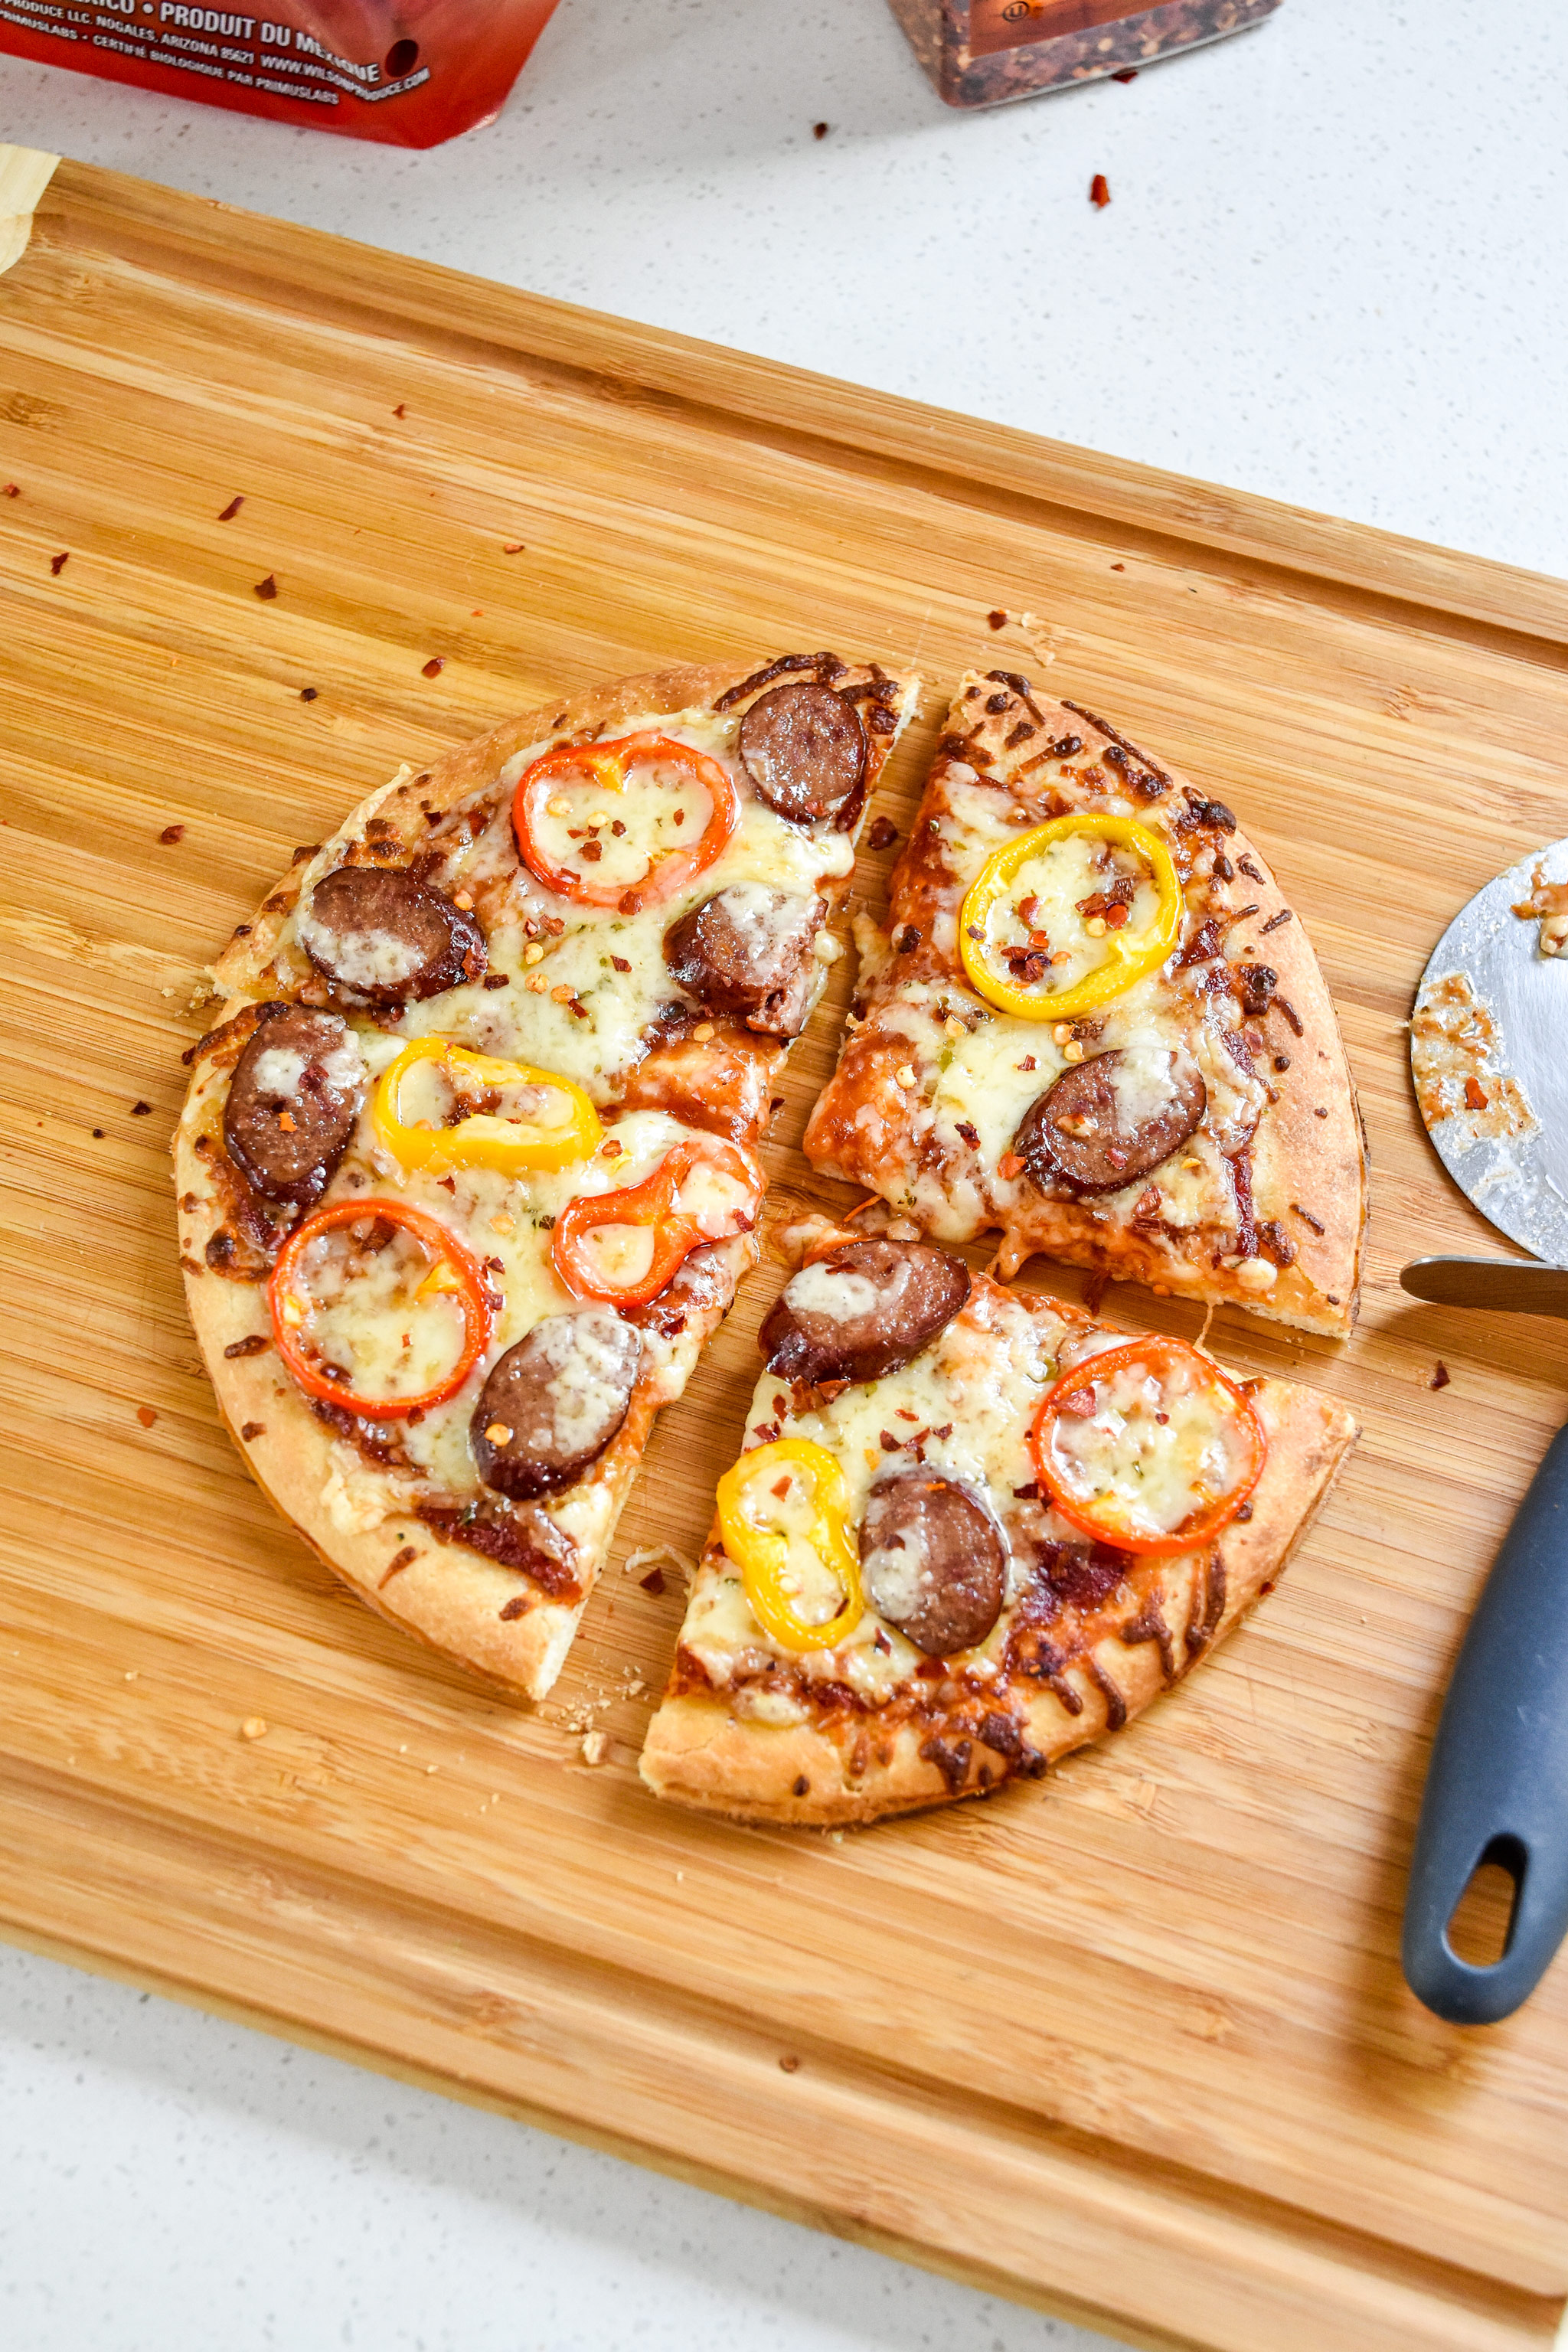 sausage and pepper personal pizza fresh from the oven cut with a pizza cutter